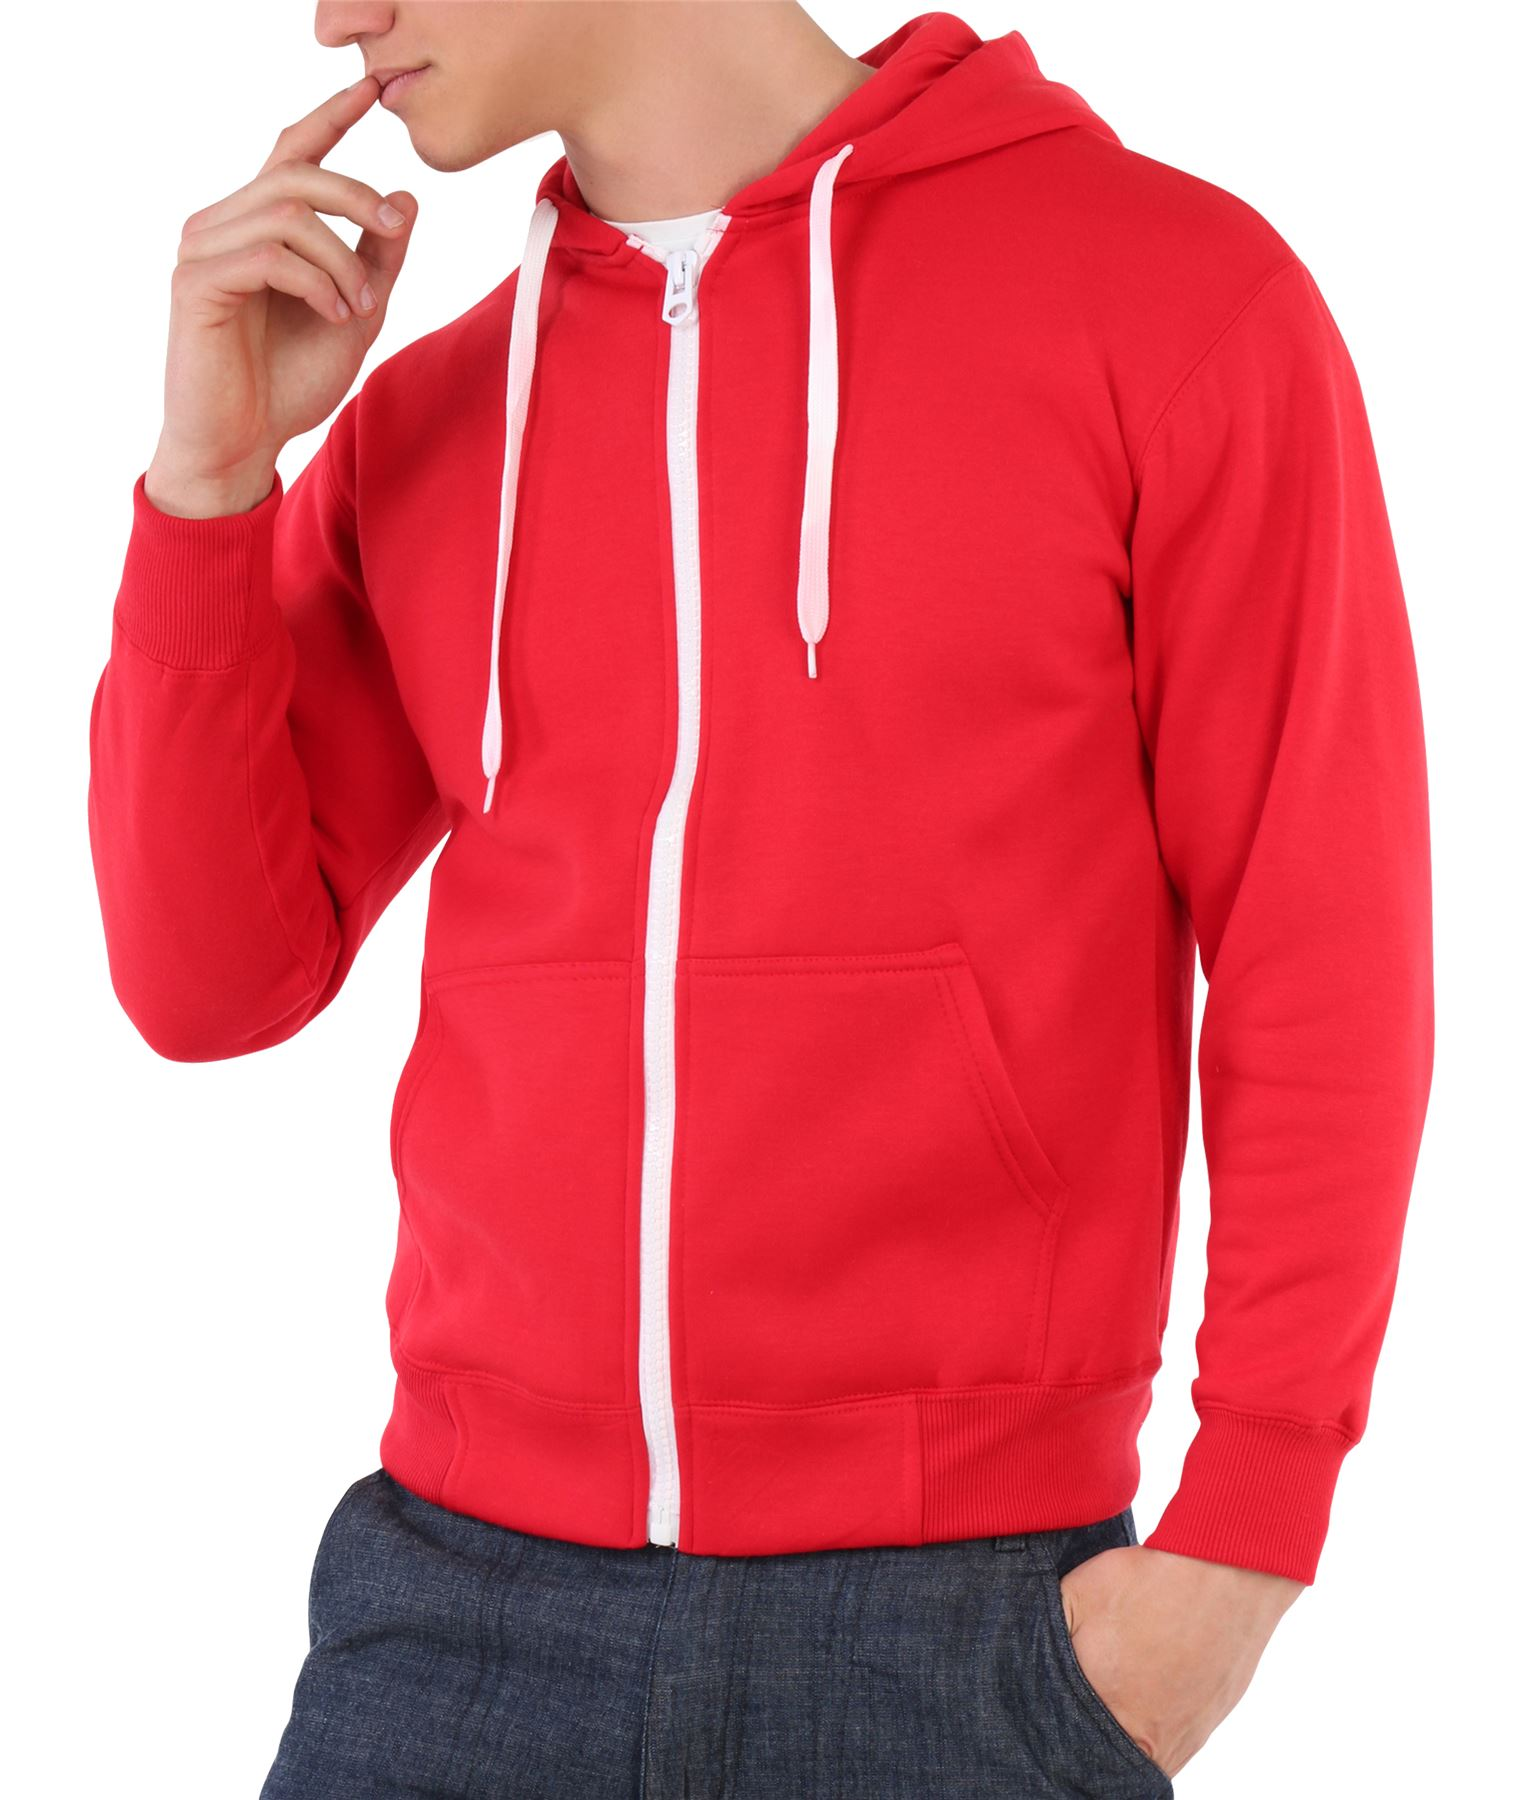 Mens Zip Up Plain Tracksuit Hoody Hoodie Hooded Top Jacket ...